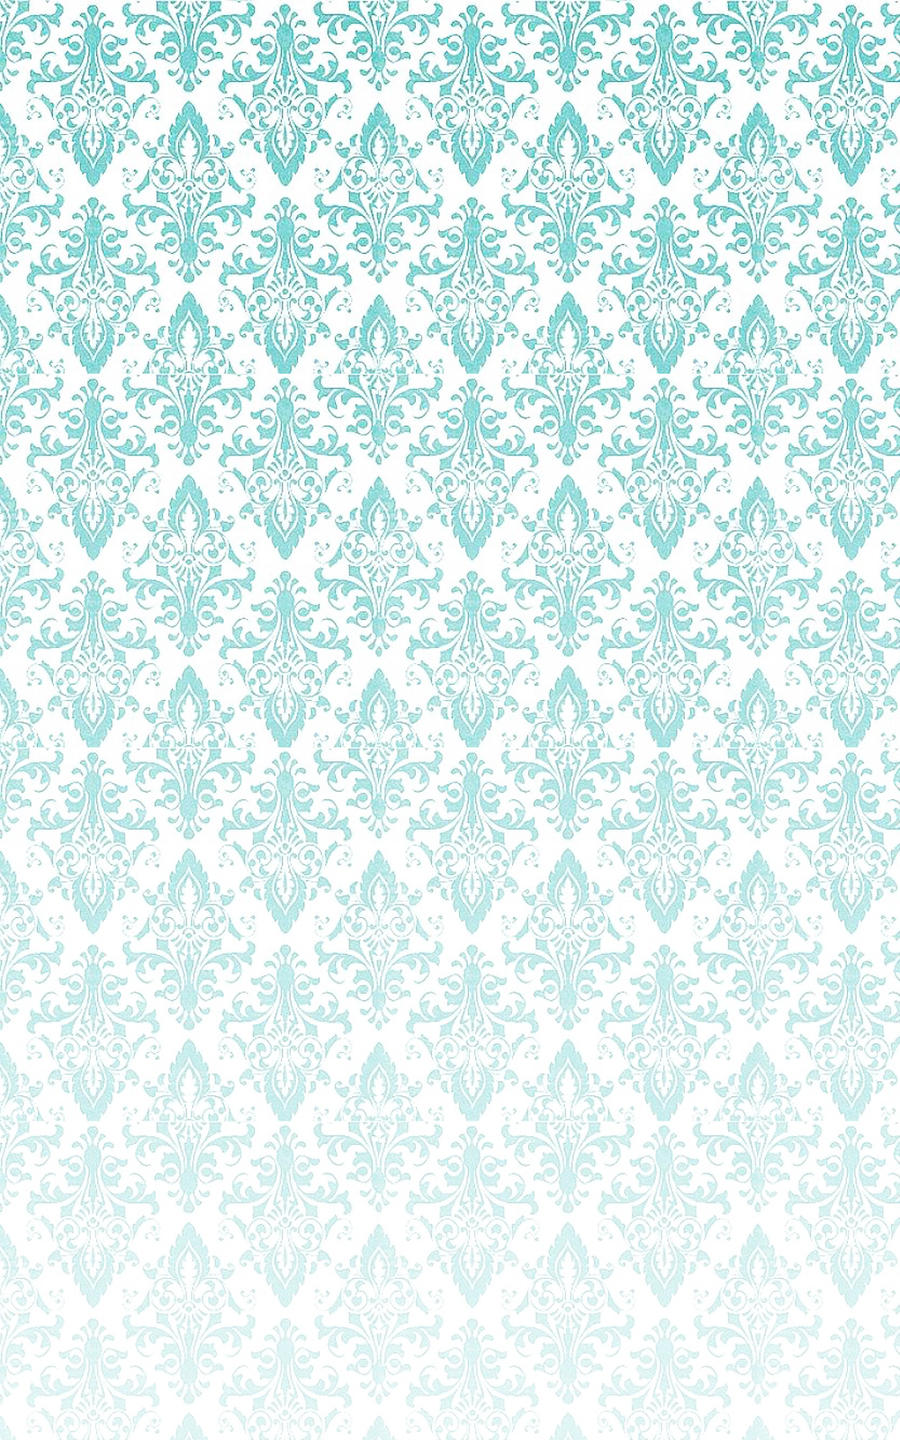 pattern custom box background by aamaji on DeviantArt